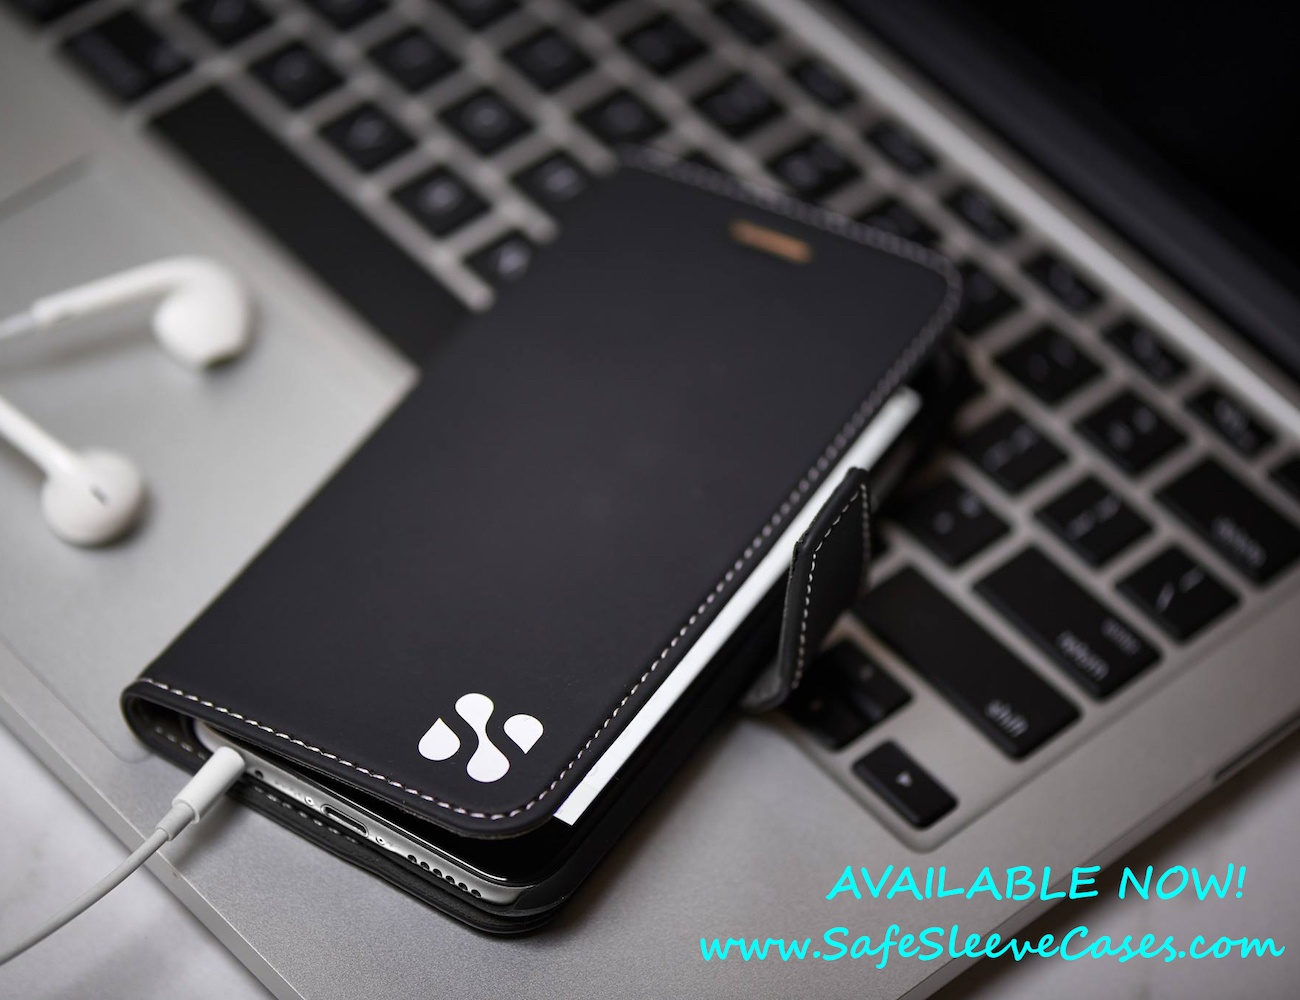 Safesleeve+Case+Protects+Smartphone